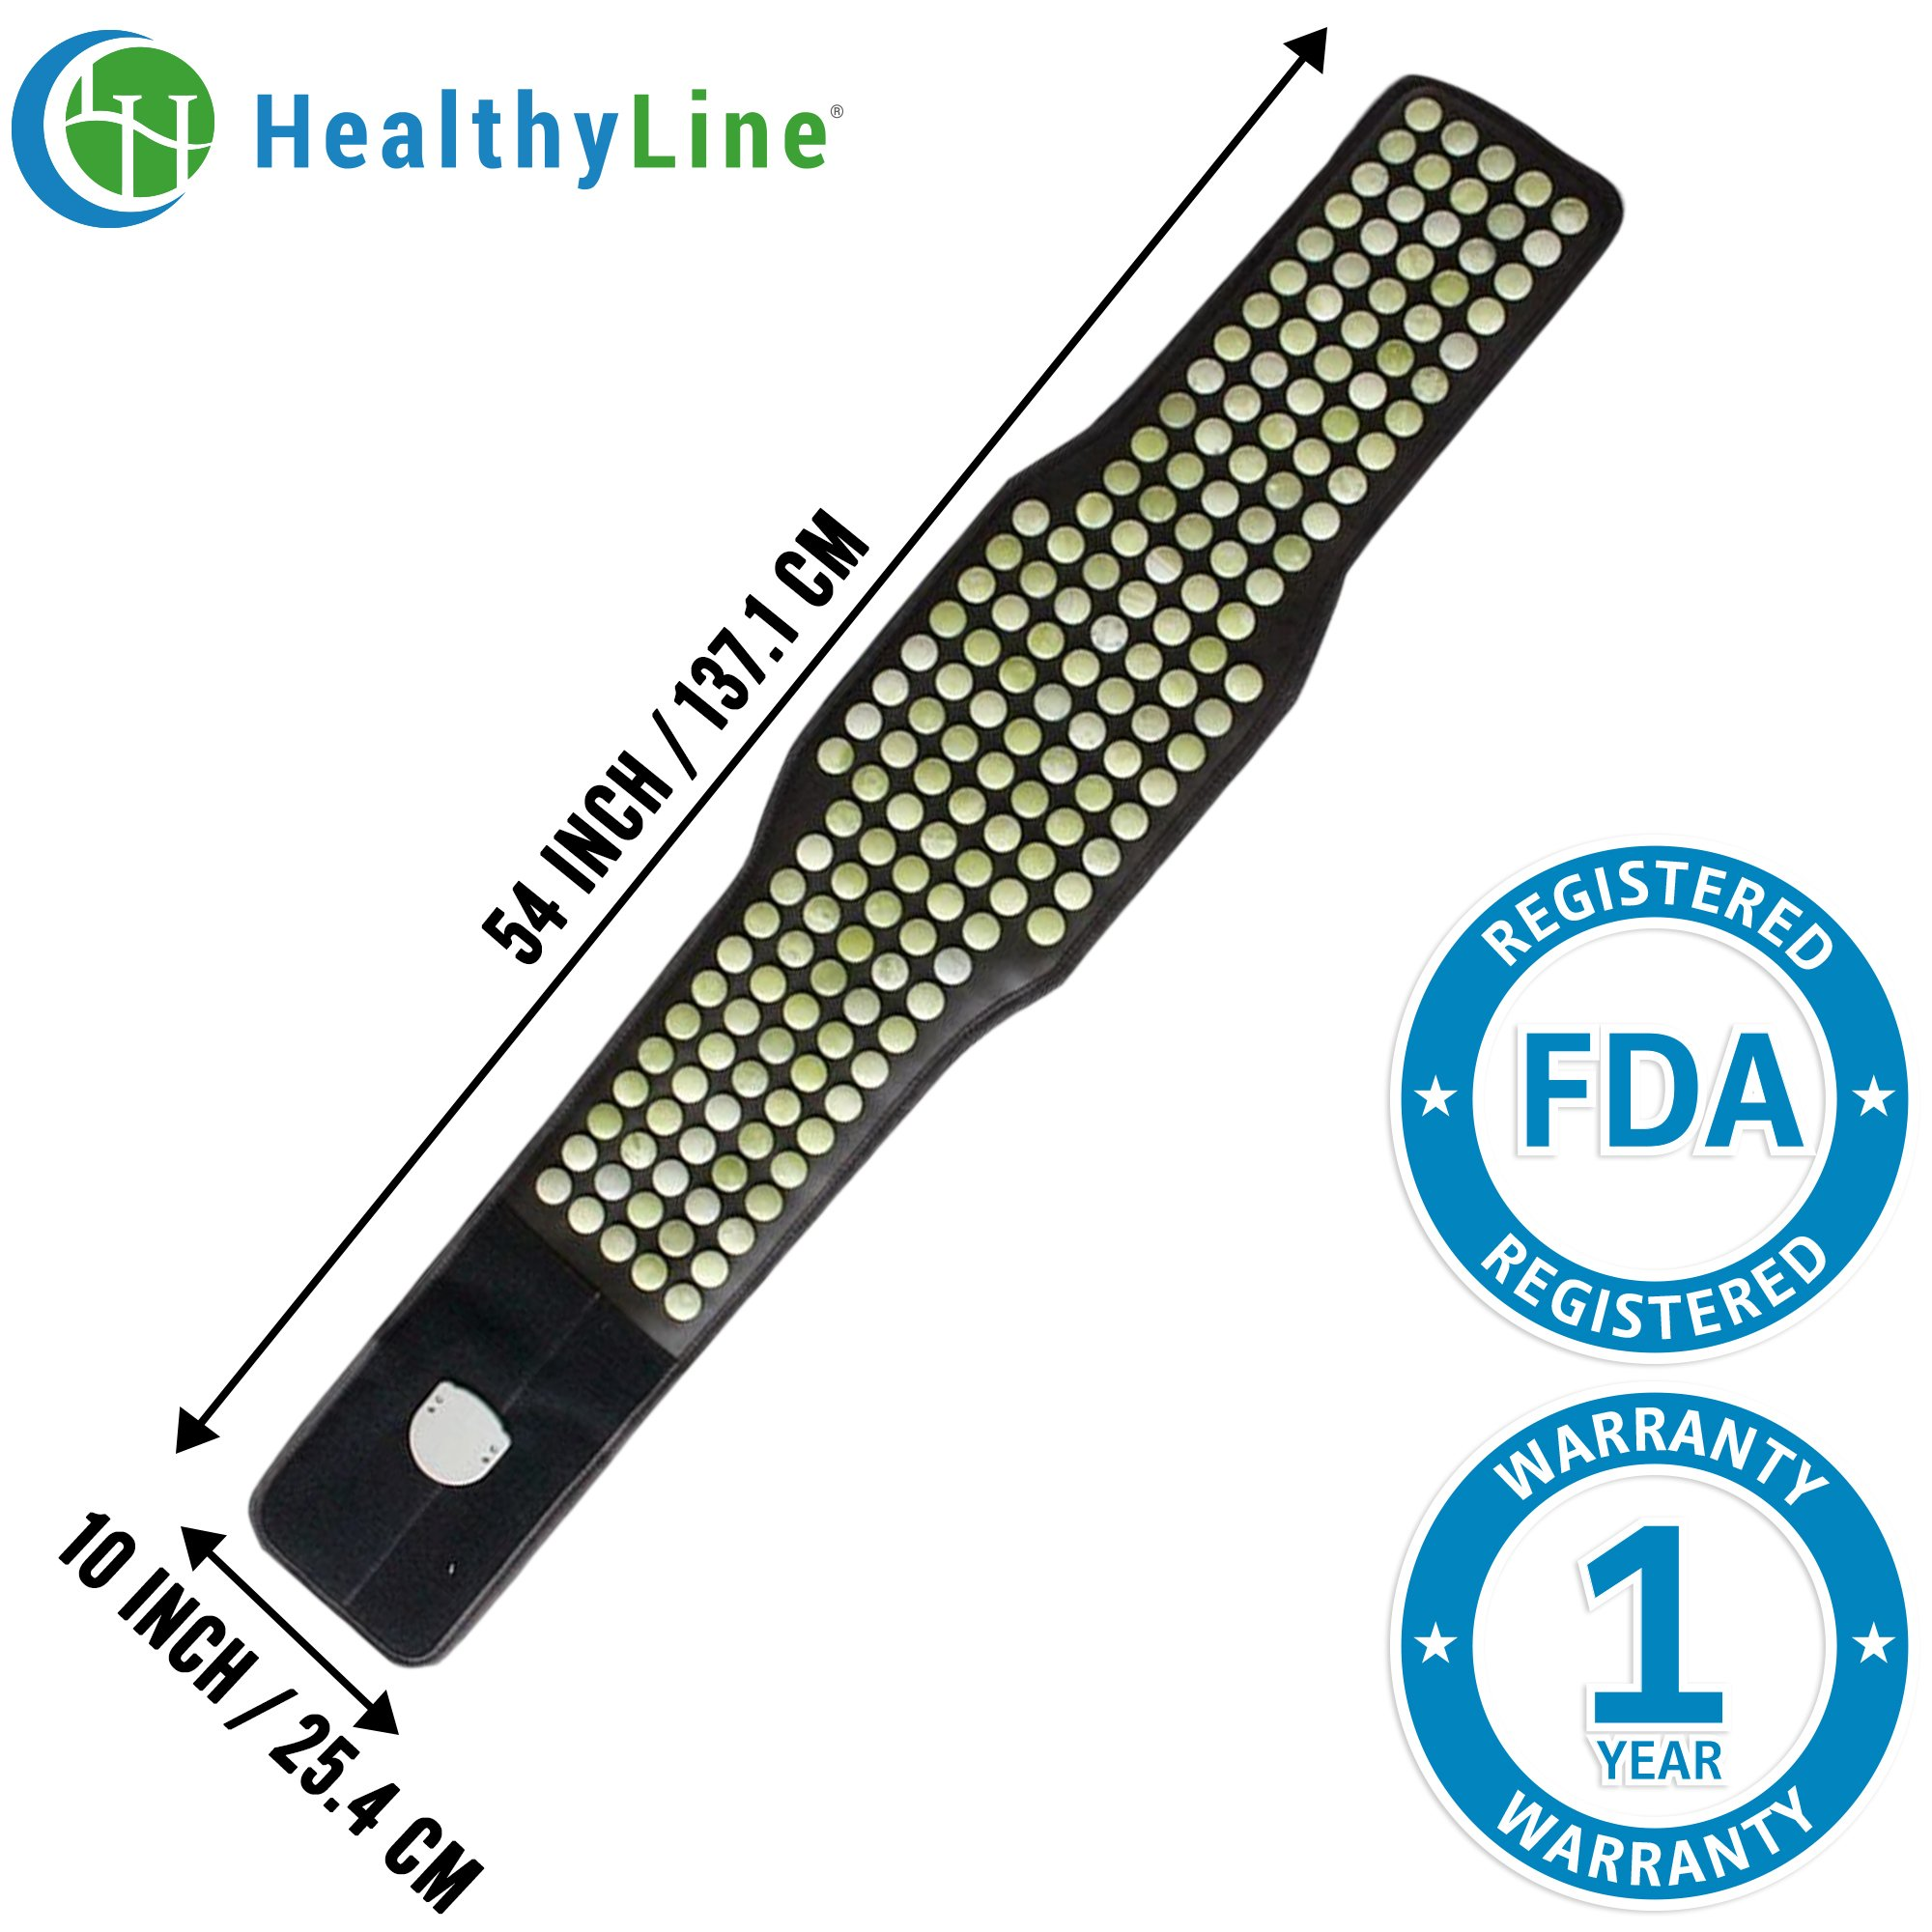 HealthyLine Lower Back Pain Relief Far Infrared Heating Belt (Firm)|Natural Jade stones, Back Brace Belt 54''X 10''|Relieve  Strains, Sprains and Muscle Spasms |US FDA by HealthyLine